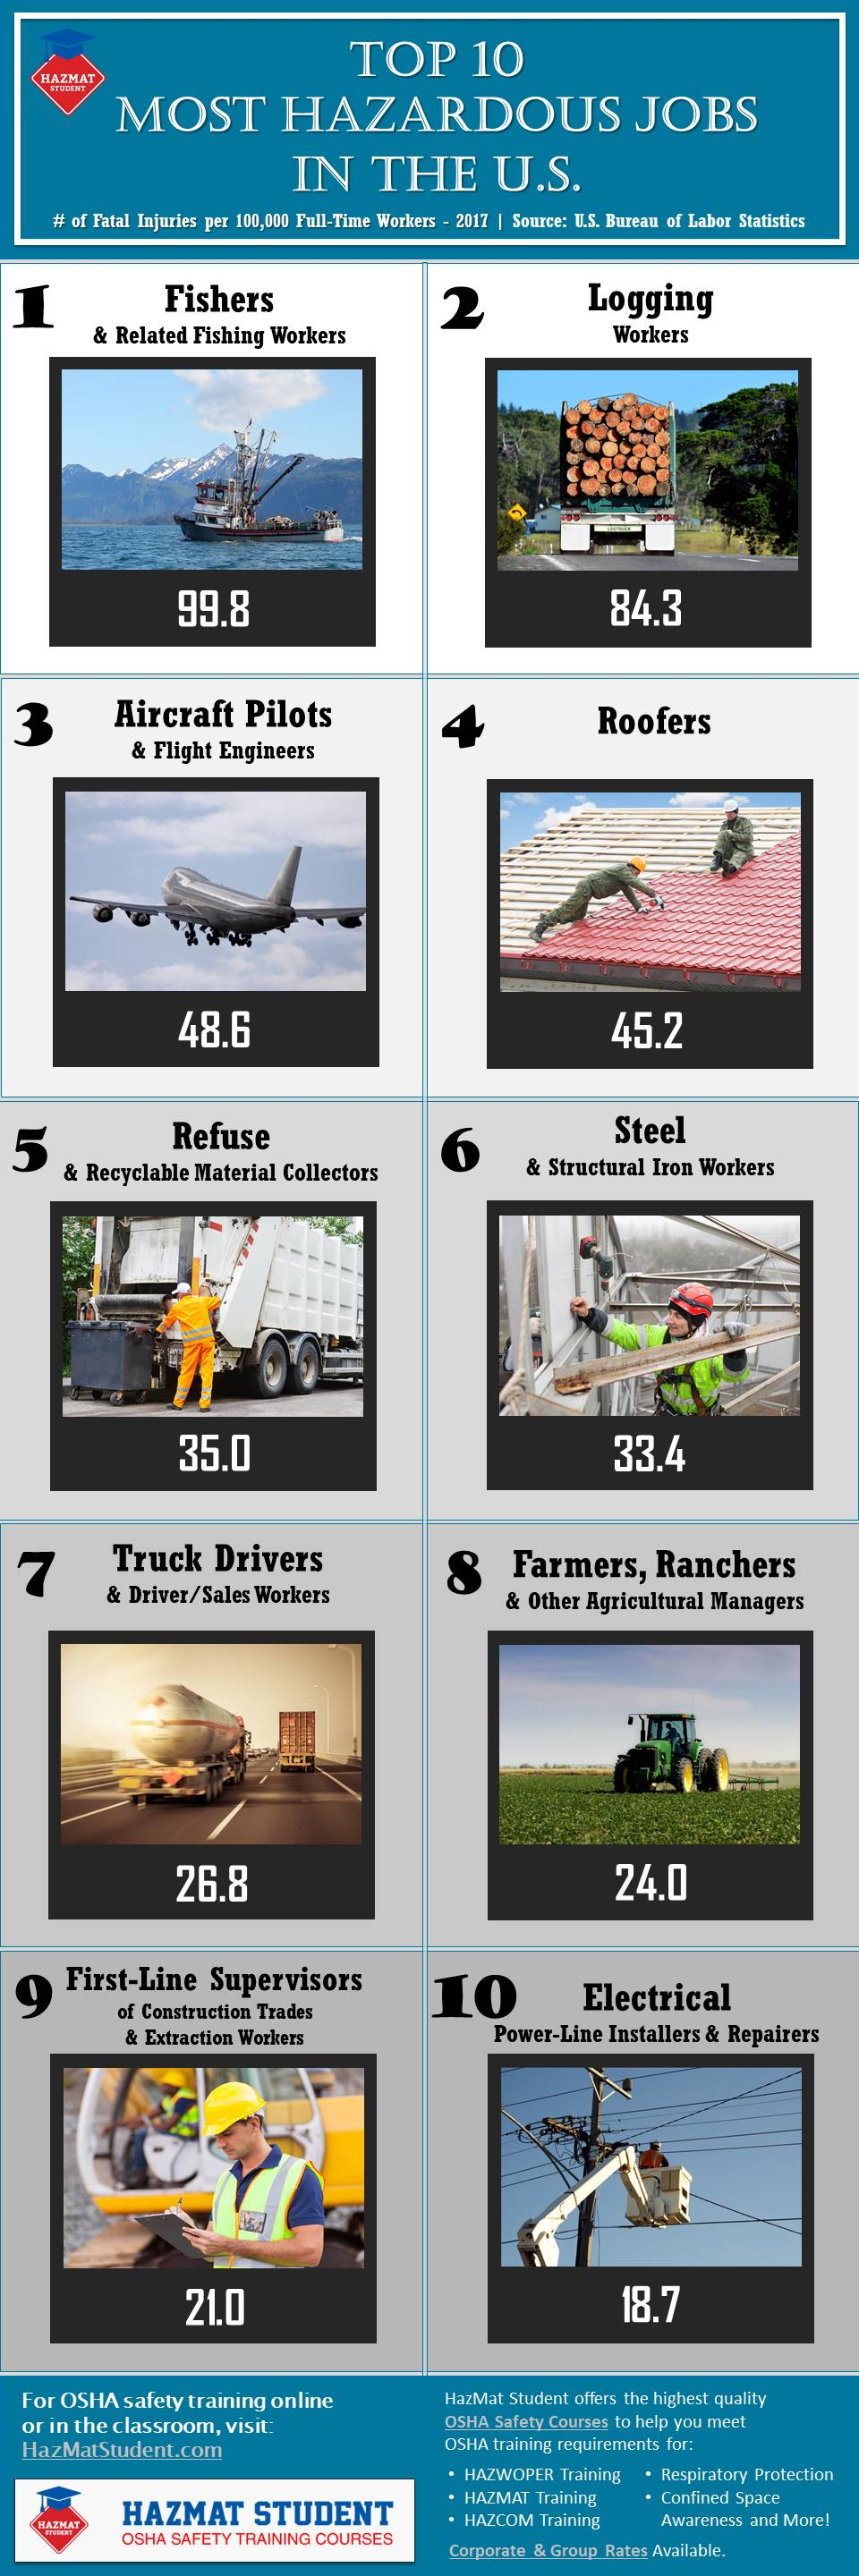 top 10 hazardous jobs infographic